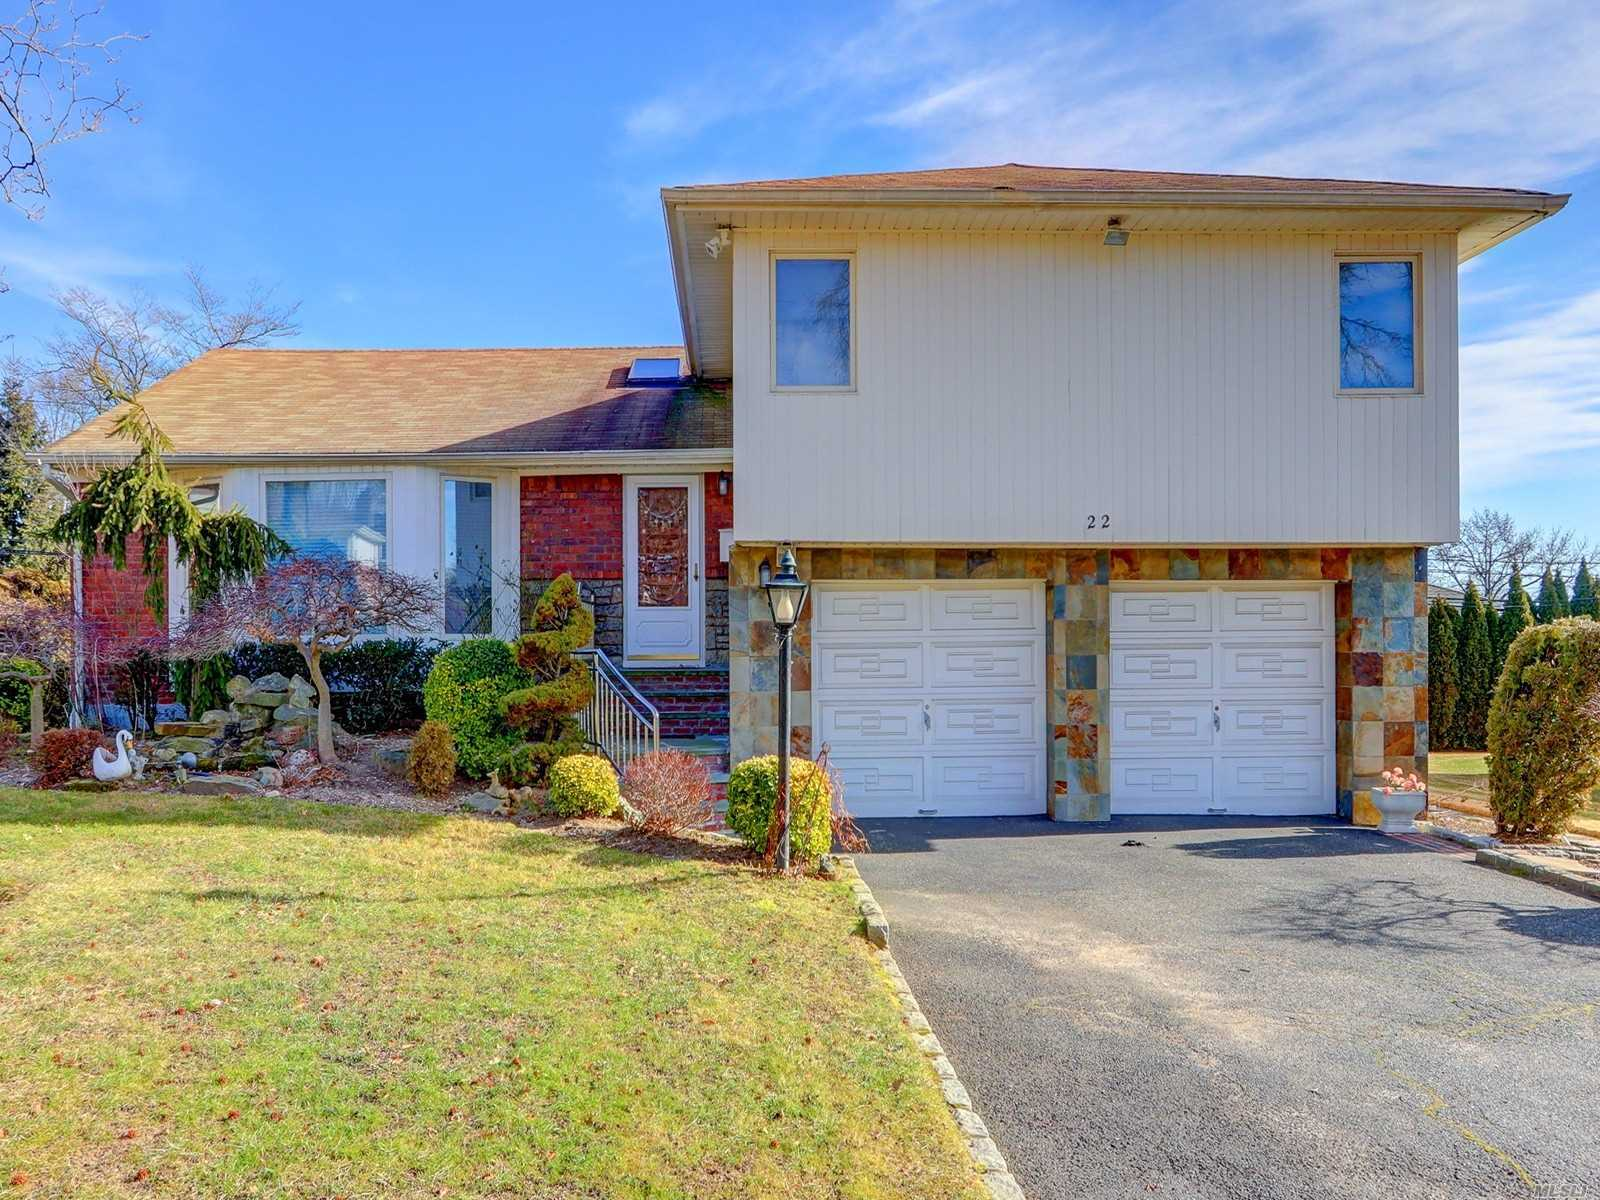 This Is The Home You Have Been Waiting For! Move In Ready, 2235 Sq. Ft., Split In The Heart Of Manhasset Hills/Desired Herricks Sd! Huge Living Room & Dining Room, Family Room Extension Off Large Eik W/Granite Counters. First Fl Has A Nice Size Den W/Fp And .5 Bath, Finished Bsmt & Lg Bdrs. Bright Home W/6 Skylights, Recently Sand/Polished Wood Floors, New Den Carpet, Newly Painted, Boiler Fairly New, Beautifully Landscaped Grounds W/Fountain, Ig Sprinklers & 2 Car Gg. Taxes Grieved!